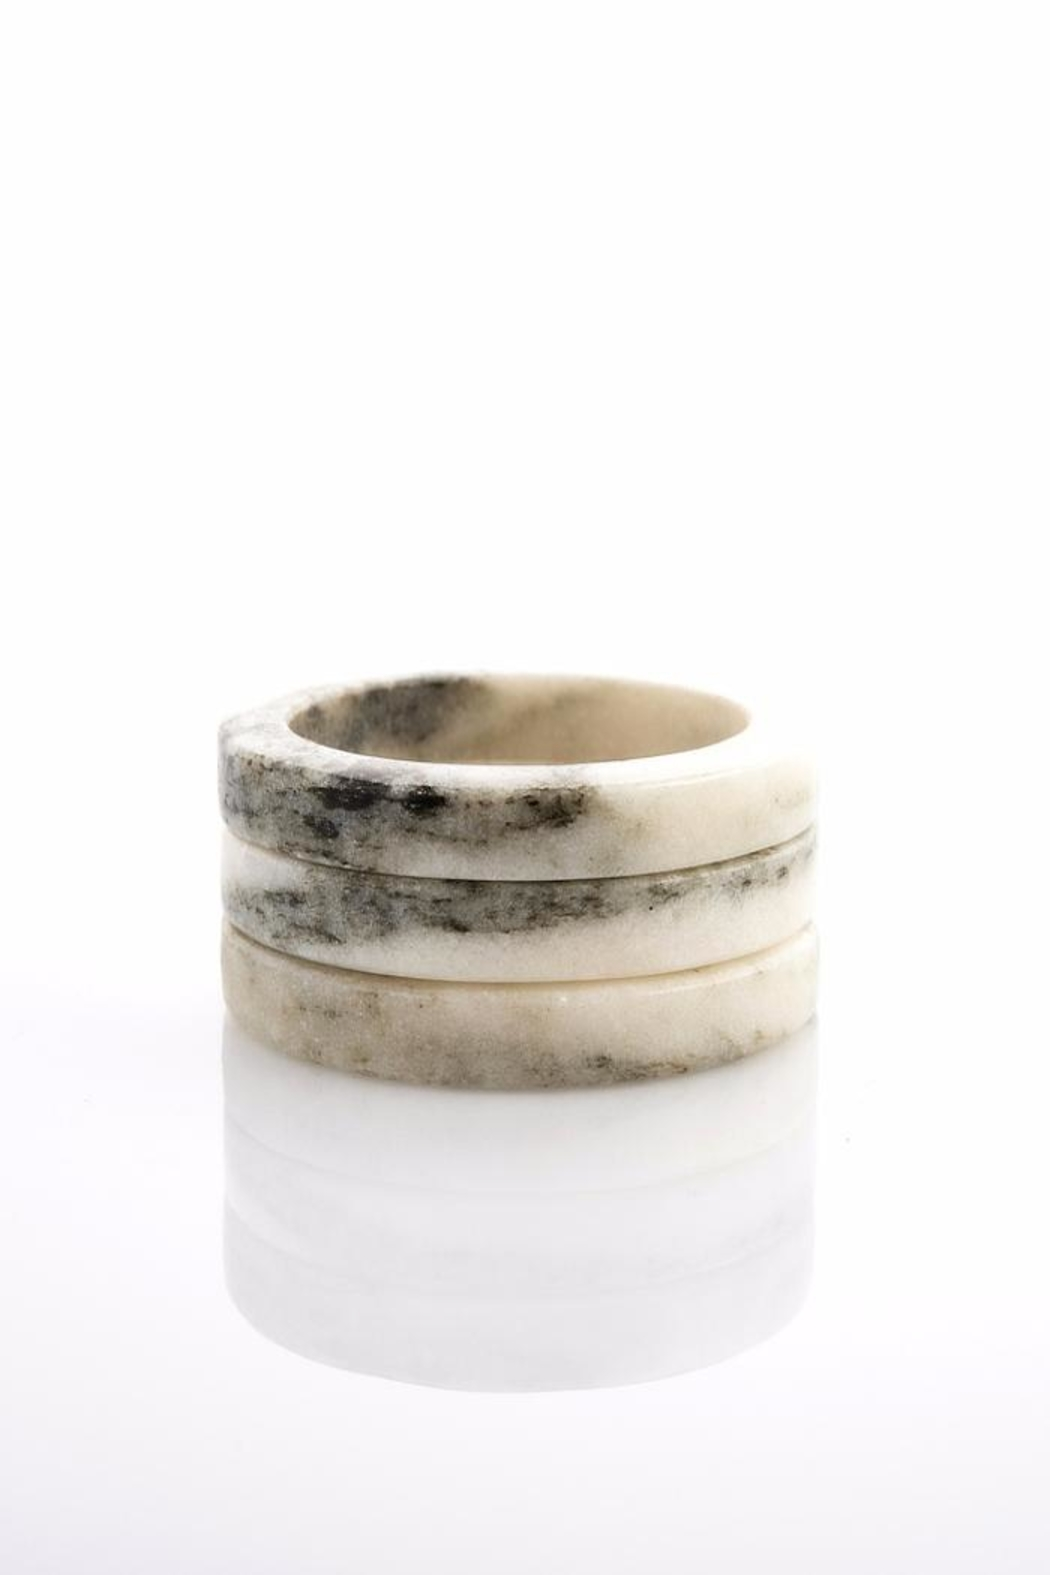 DAVINCI Marble Bangle from California by DAVINCI Los Angeles